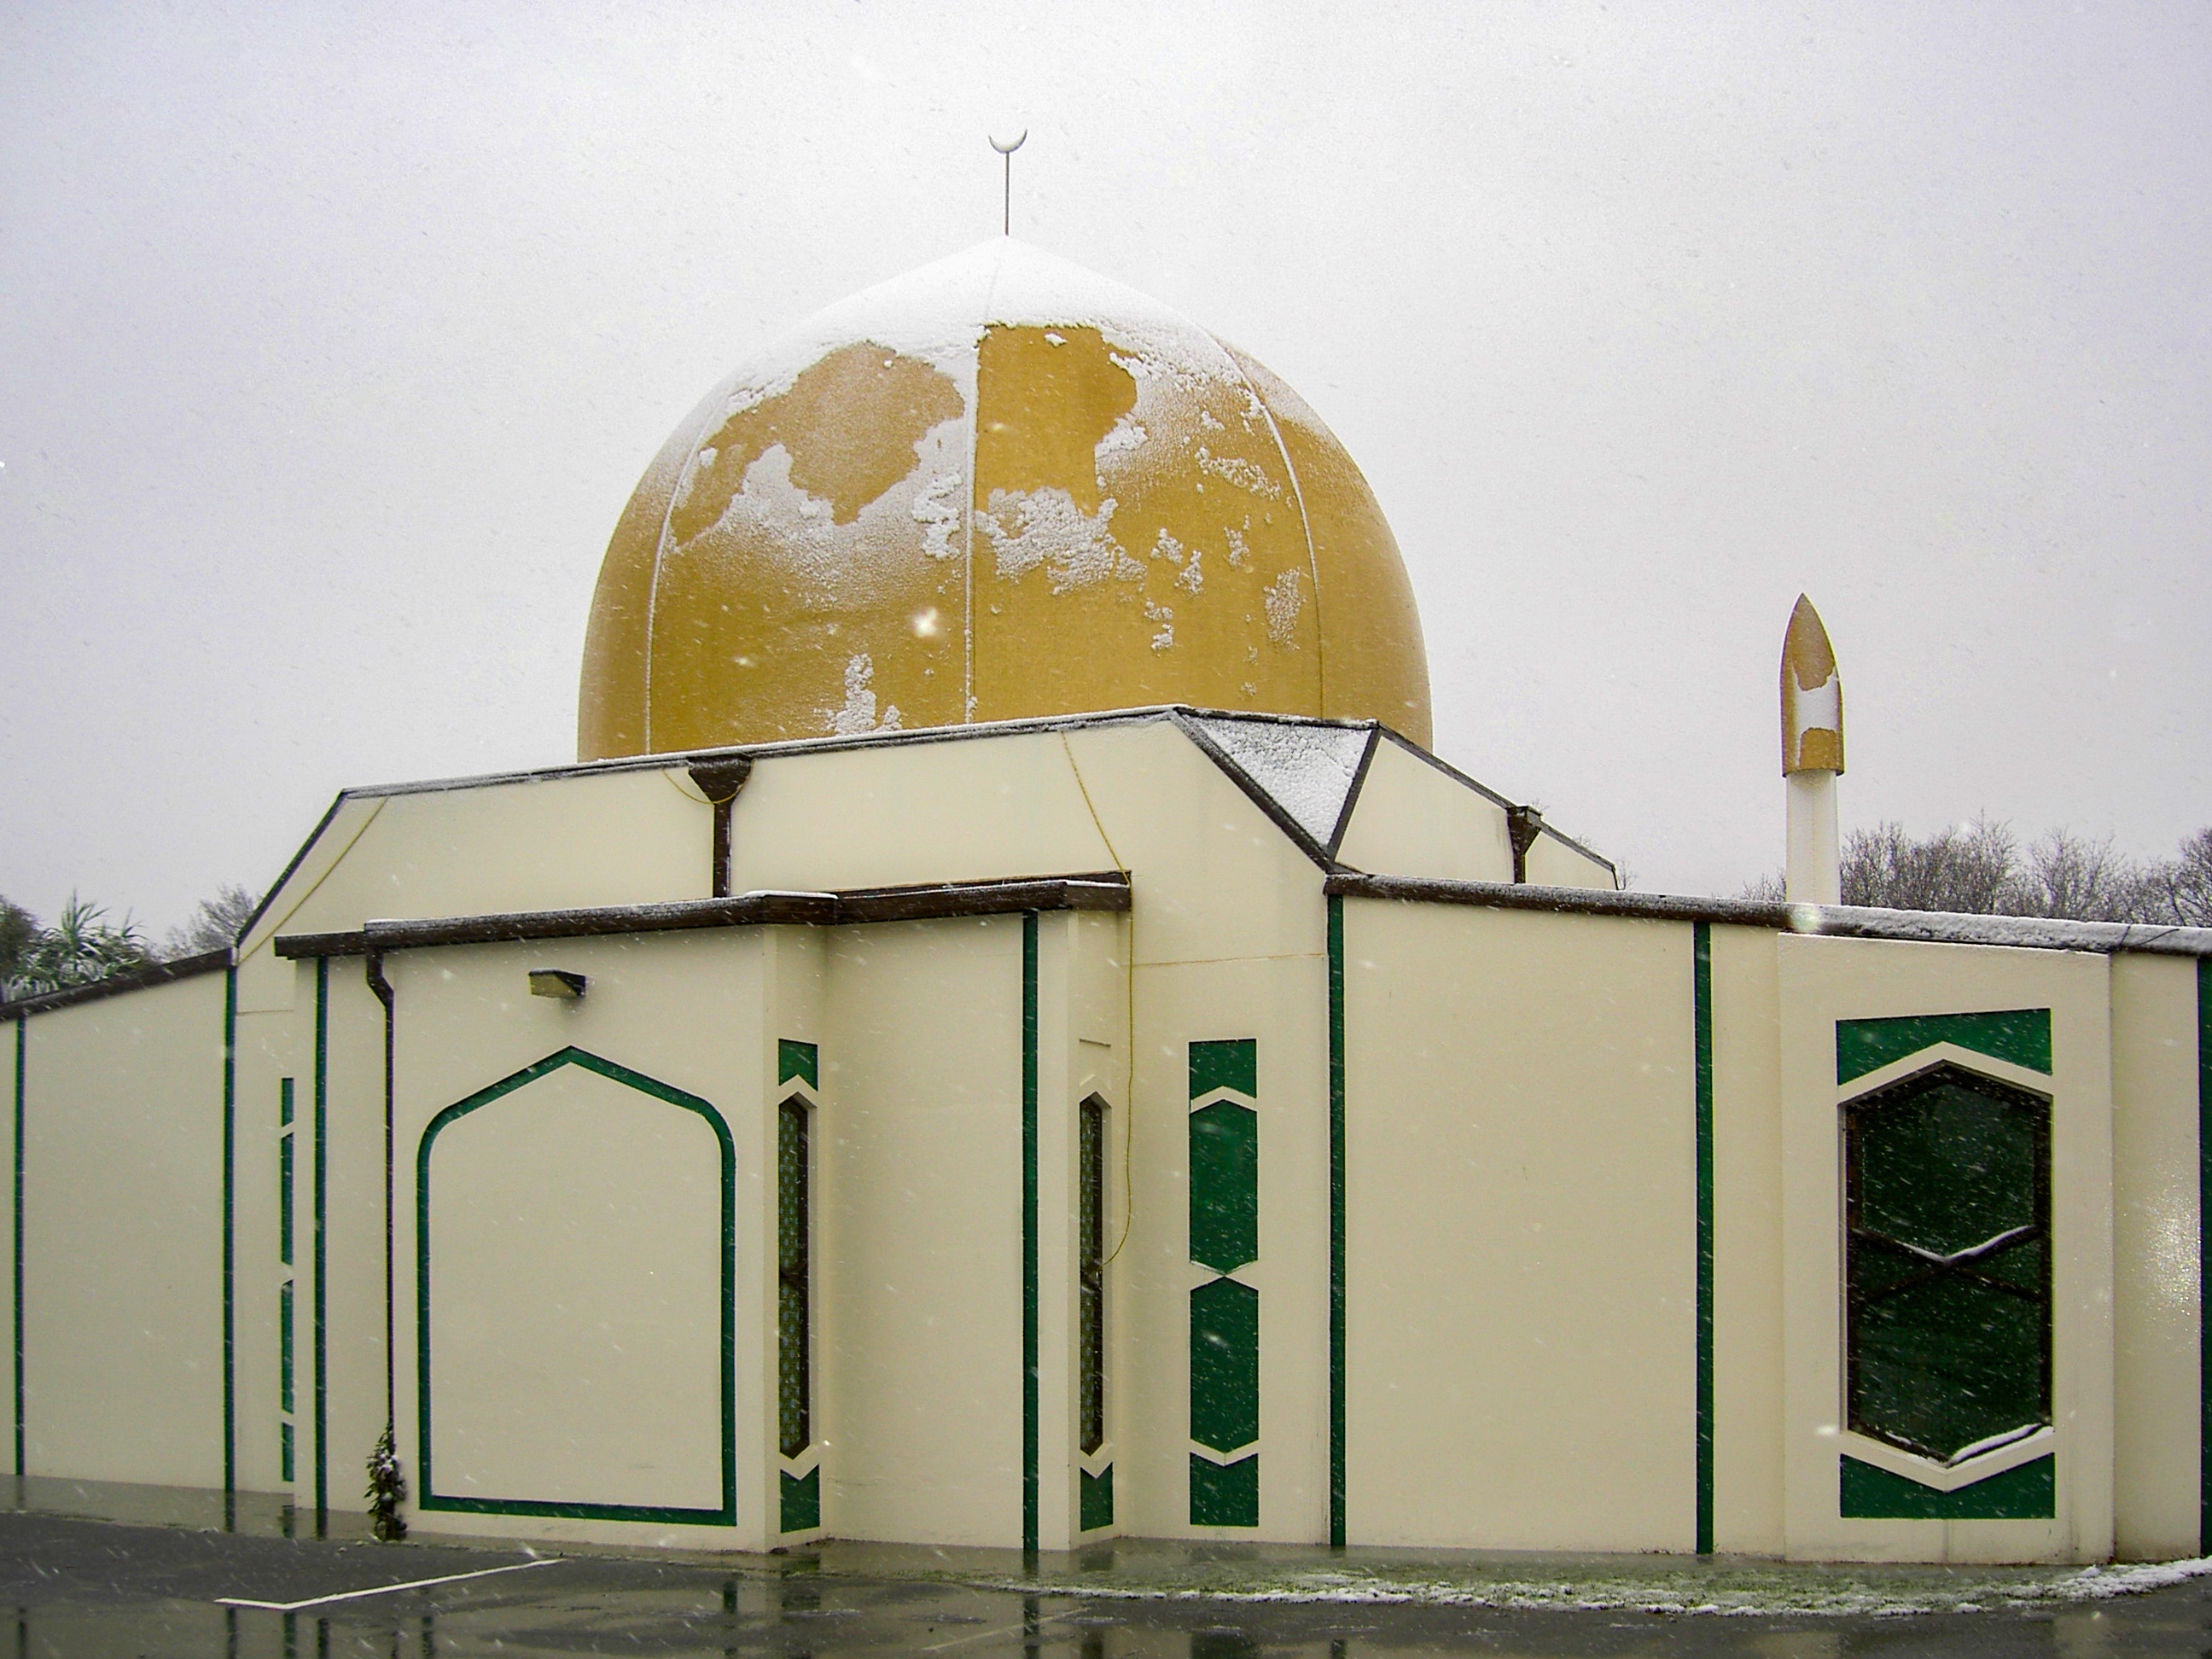 Christchurch: A Christian's Perspective